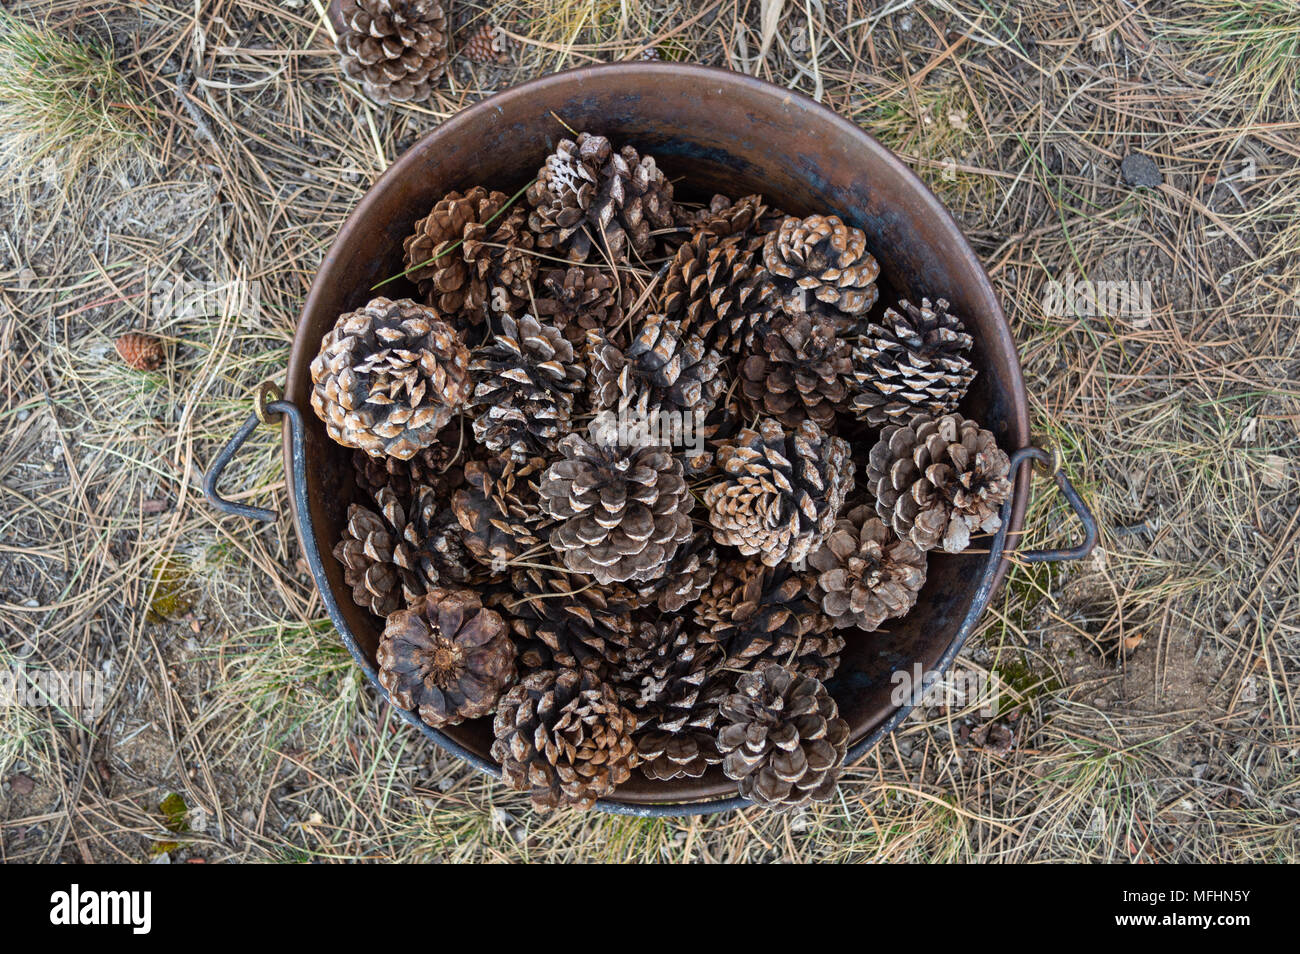 Rusty Bucket Full of Pinecones - Stock Image